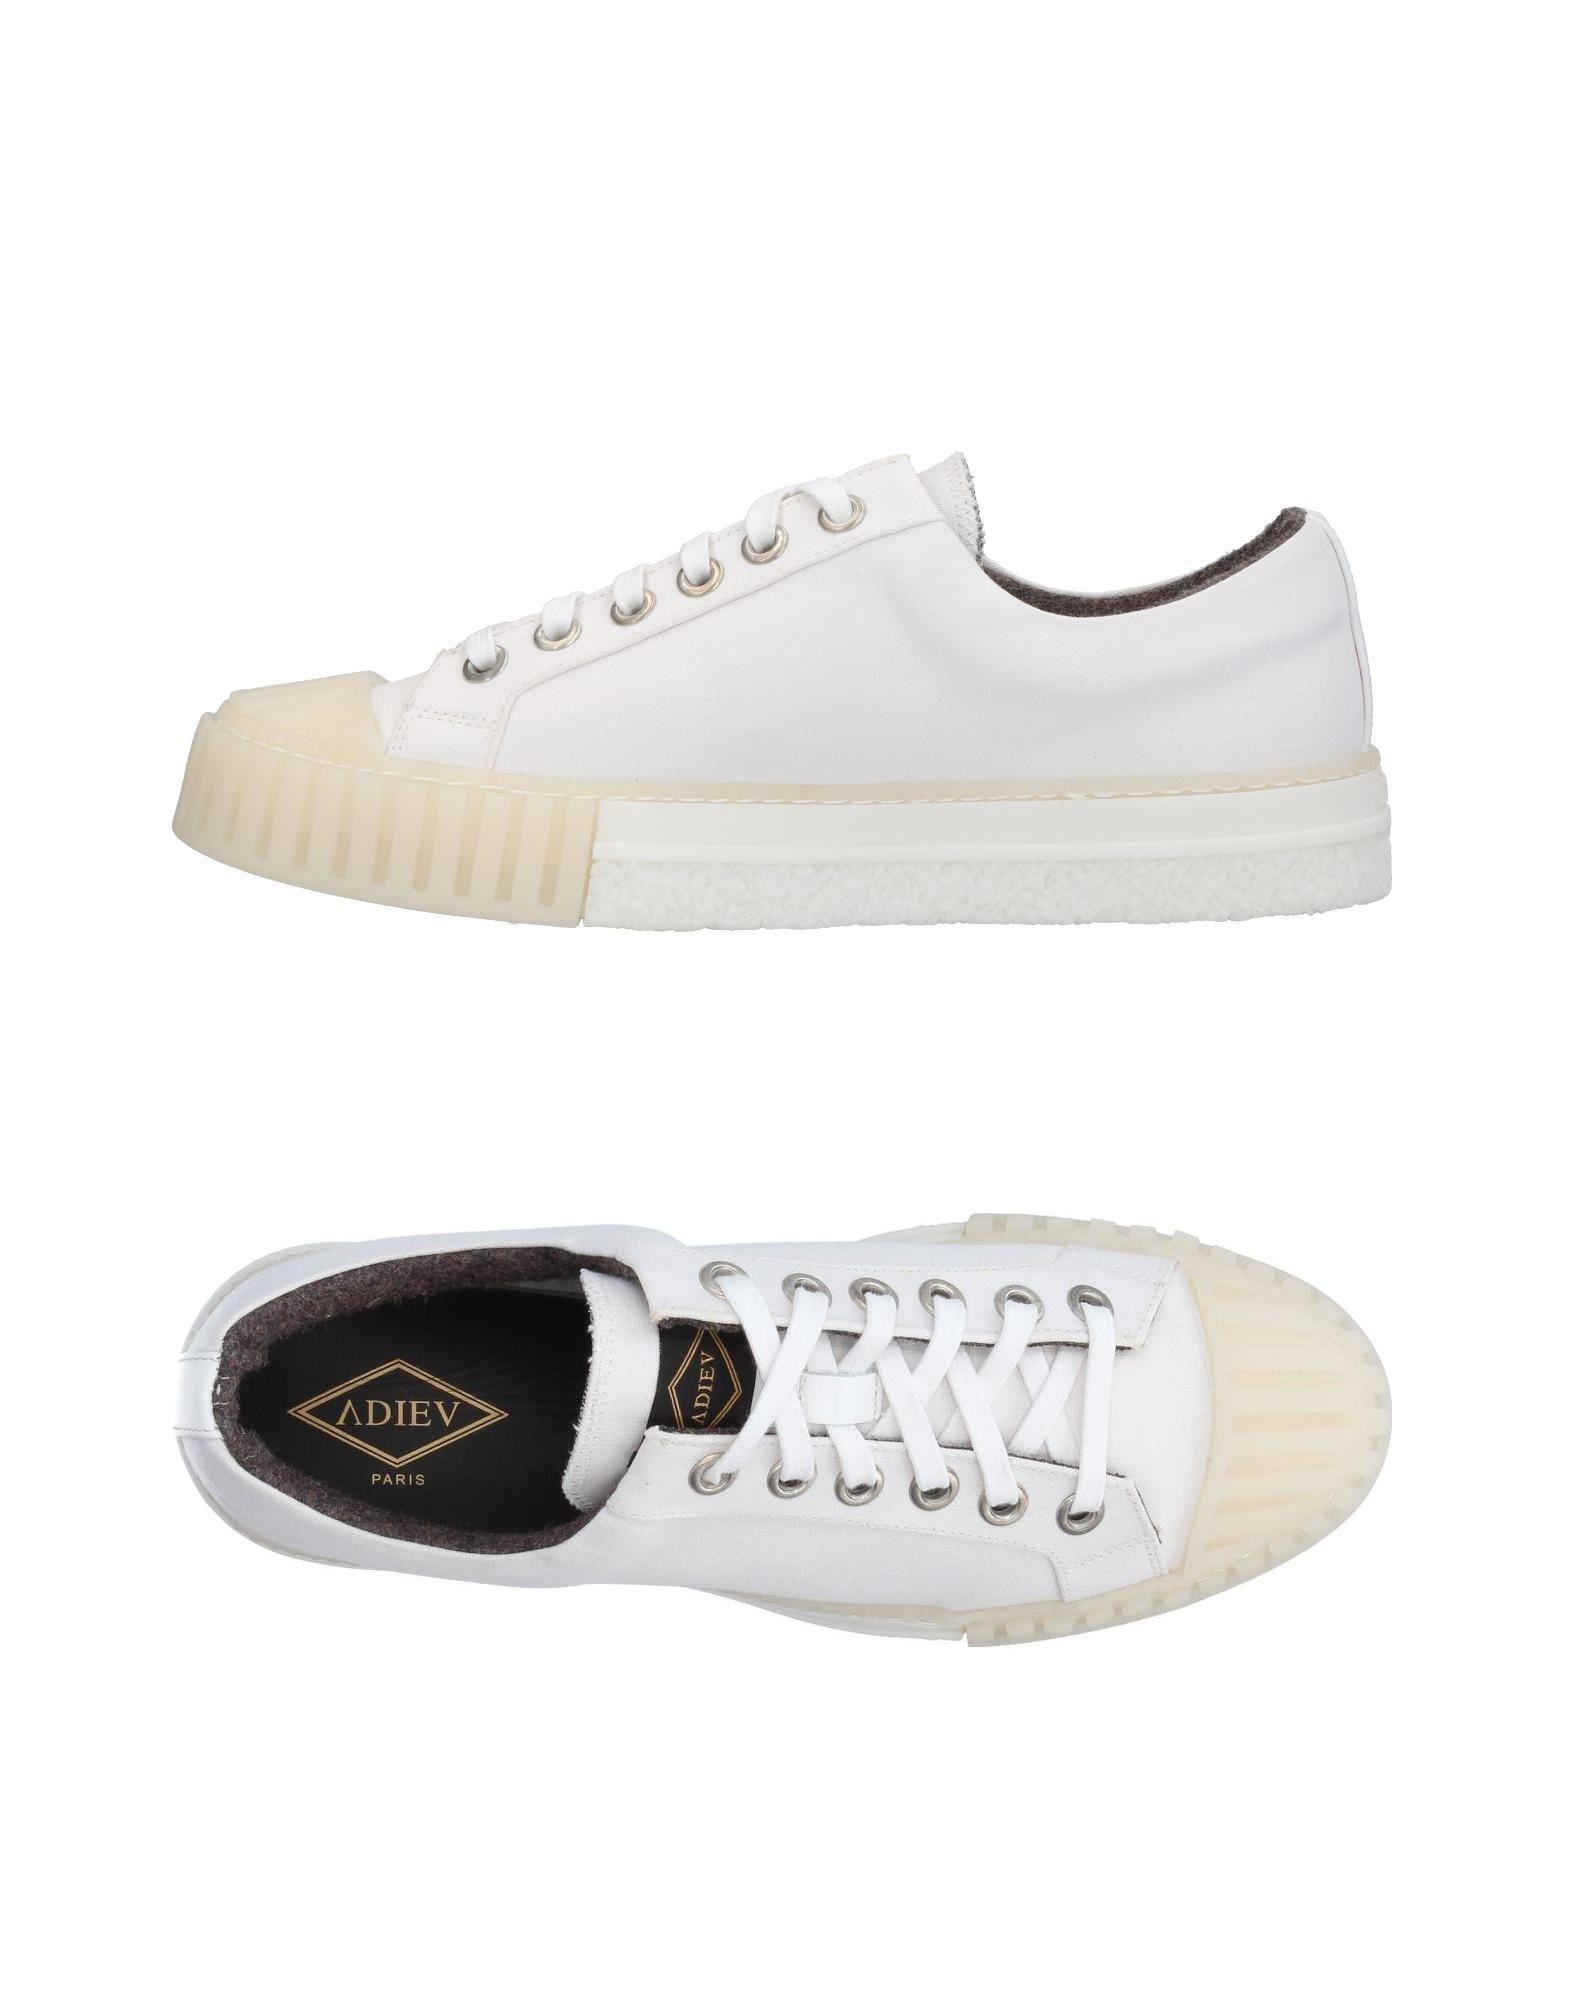 Outlet Countdown Package Sale Online Cheap FOOTWEAR - Low-tops & sneakers Adieu Outlet Cheap Authentic 100% Guaranteed Online CJQL9